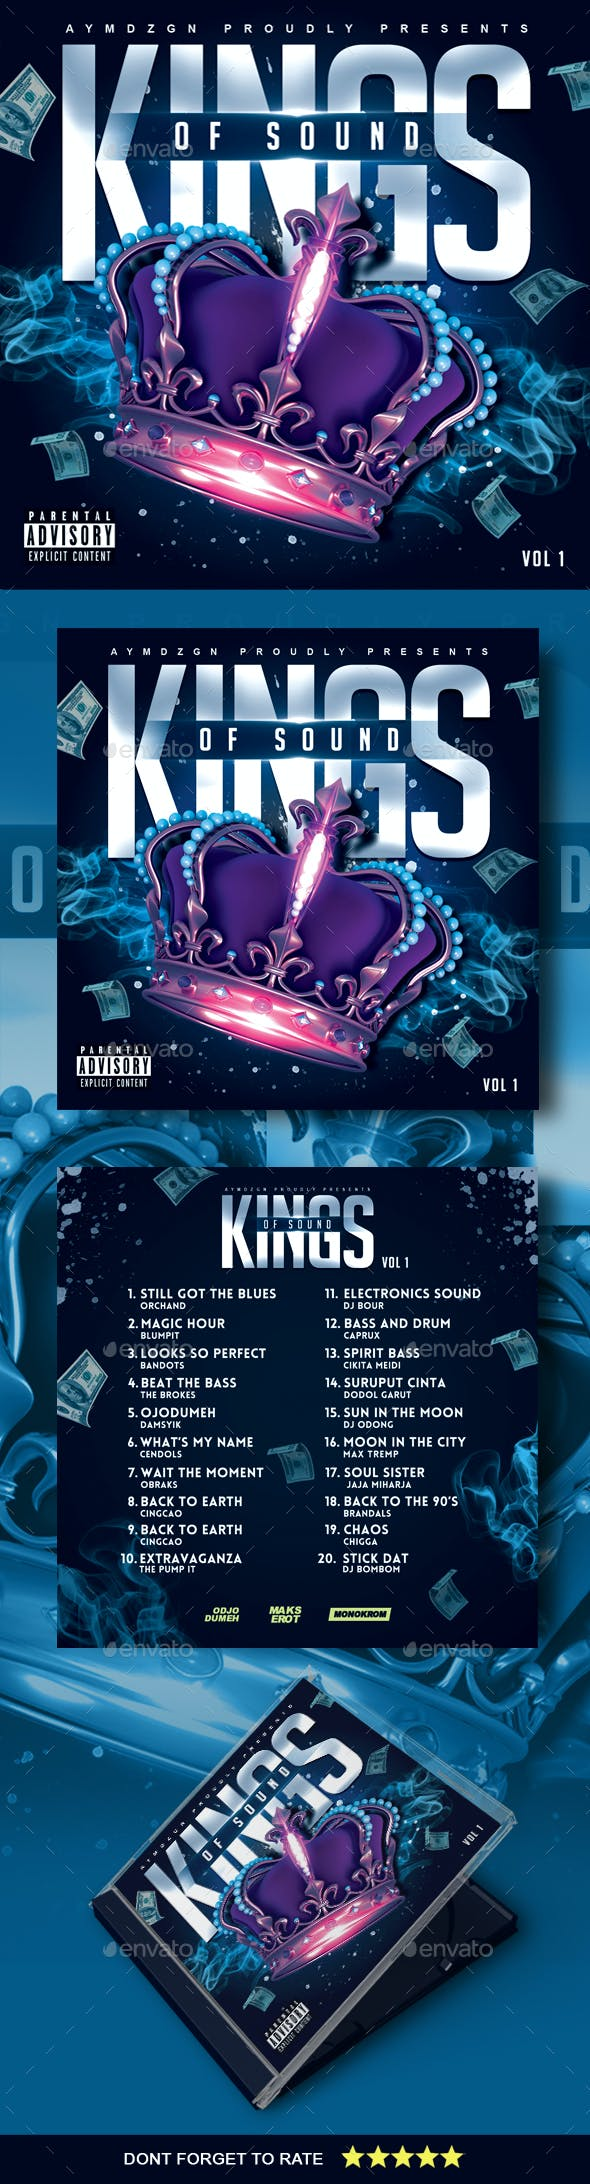 Kings of Sound Mixtape Cover